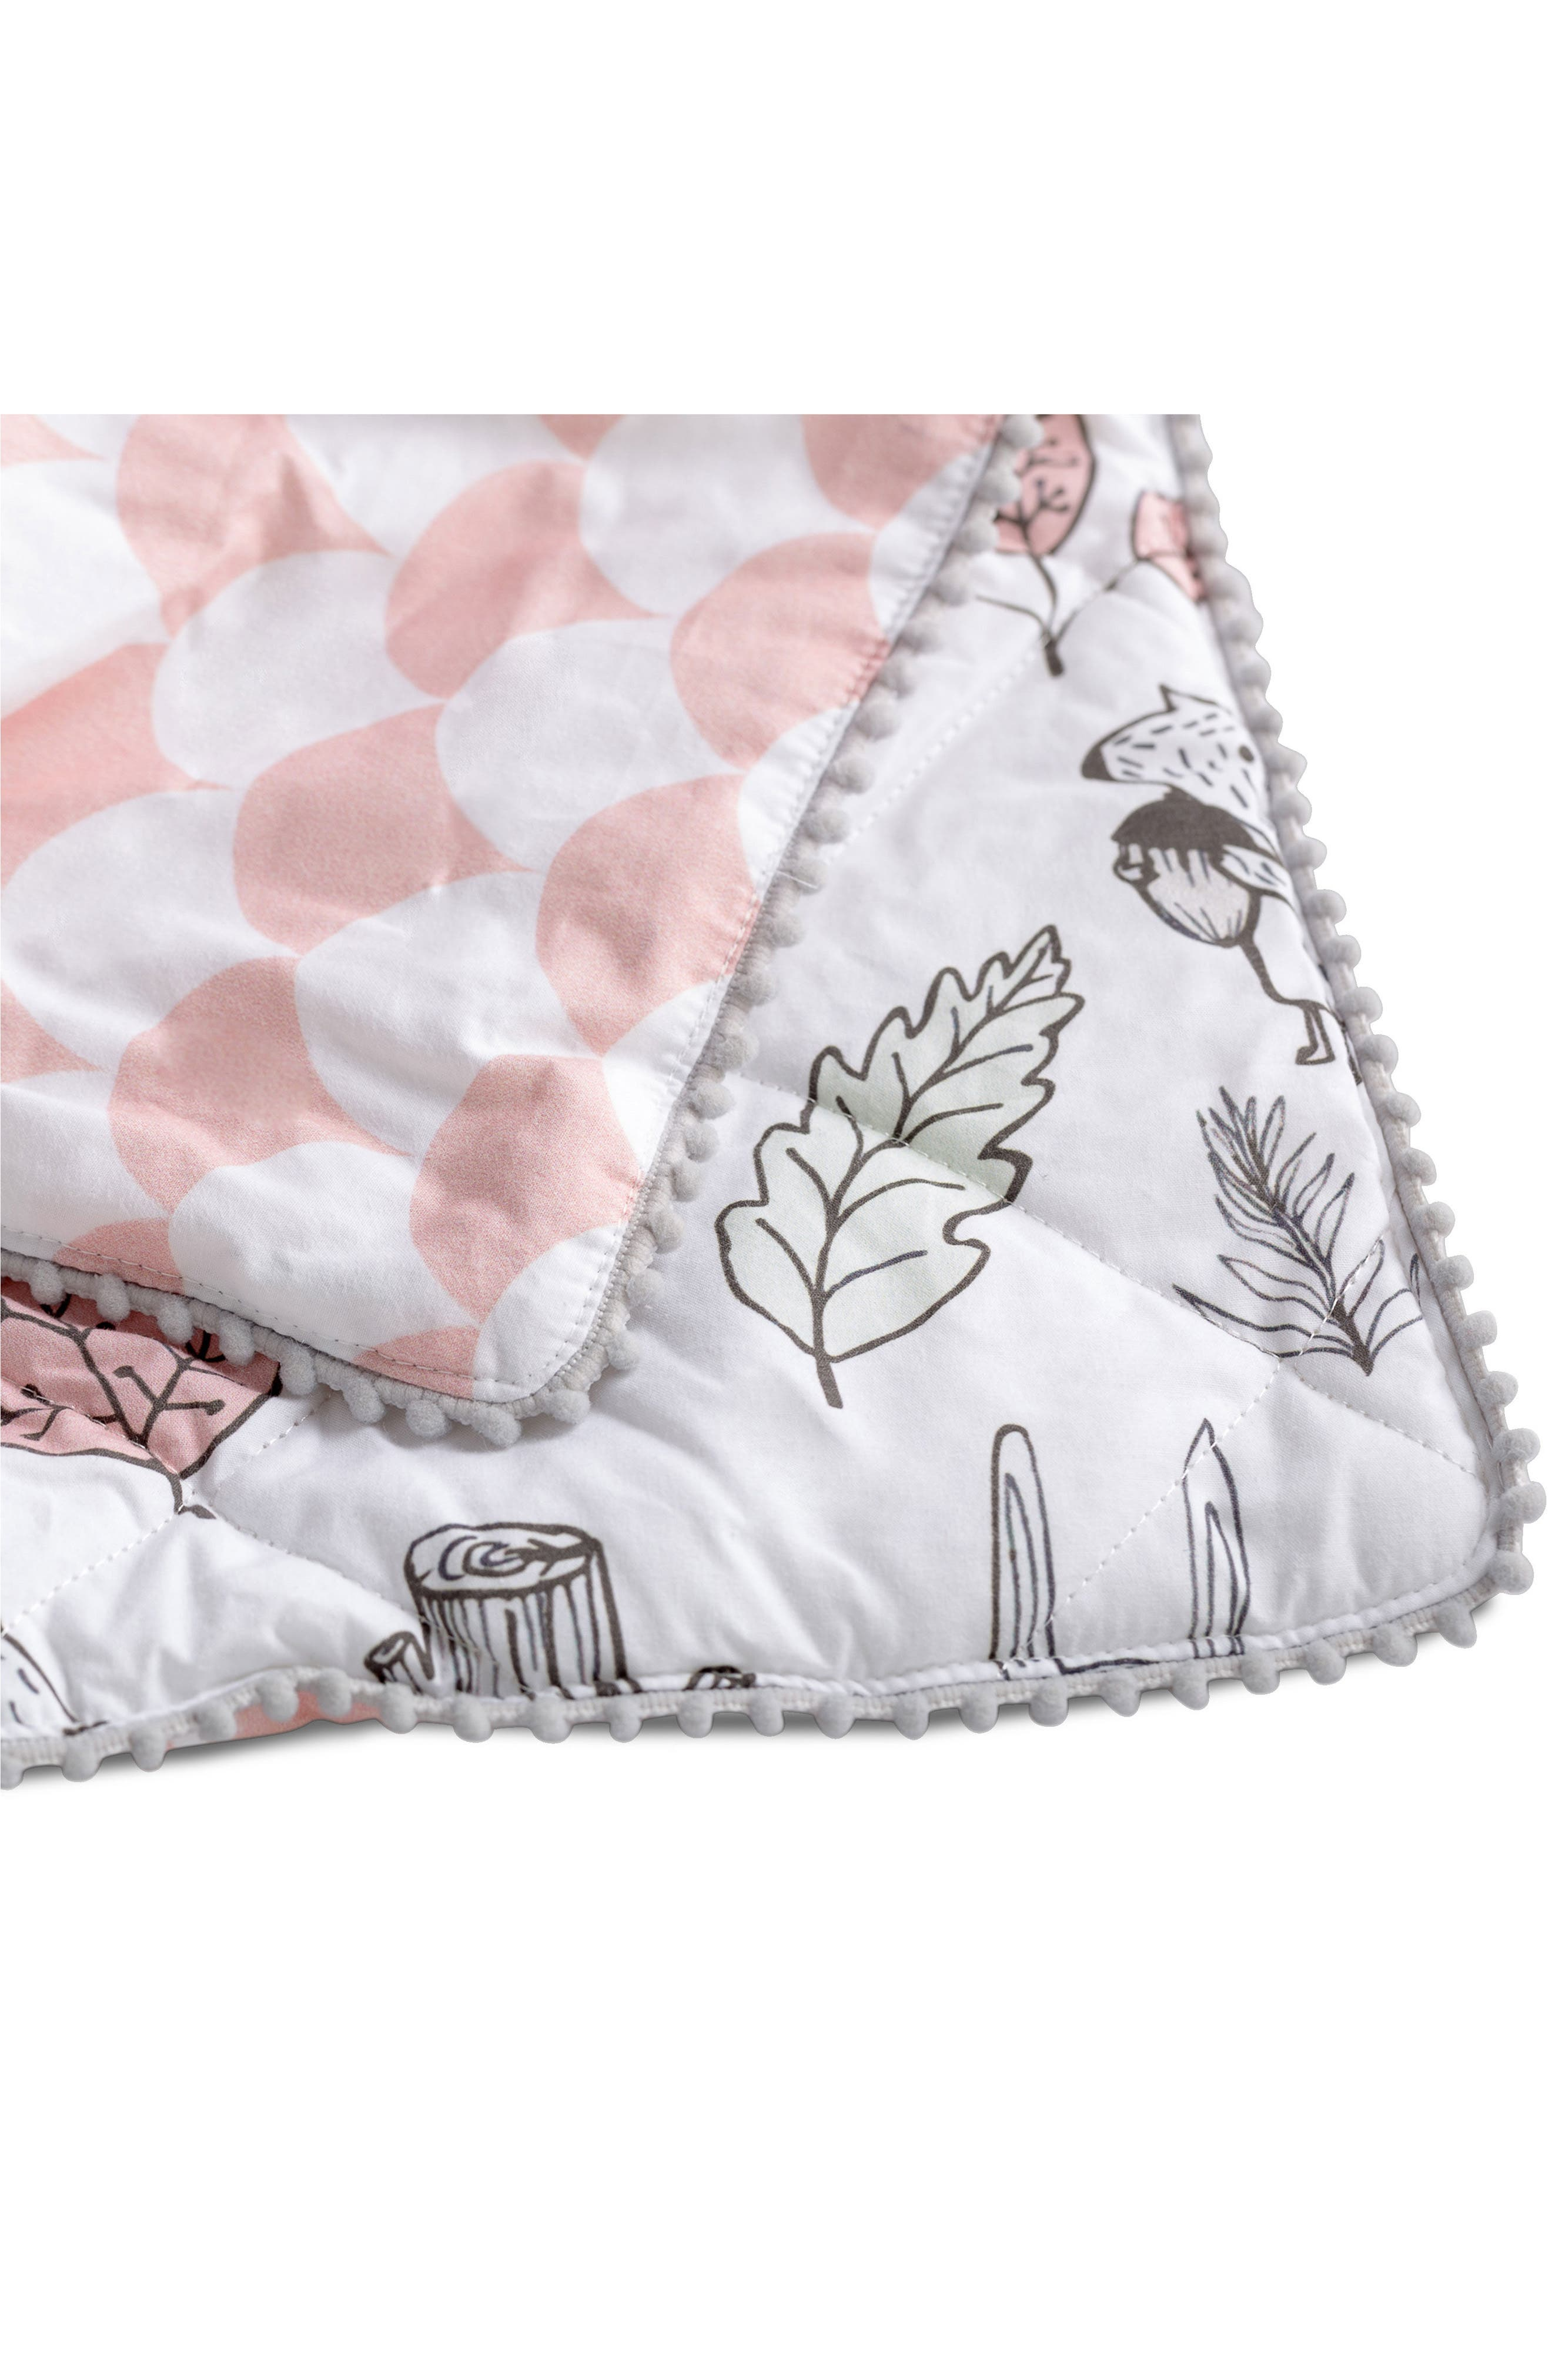 Kayden Quilted Comforter,                             Alternate thumbnail 3, color,                             100